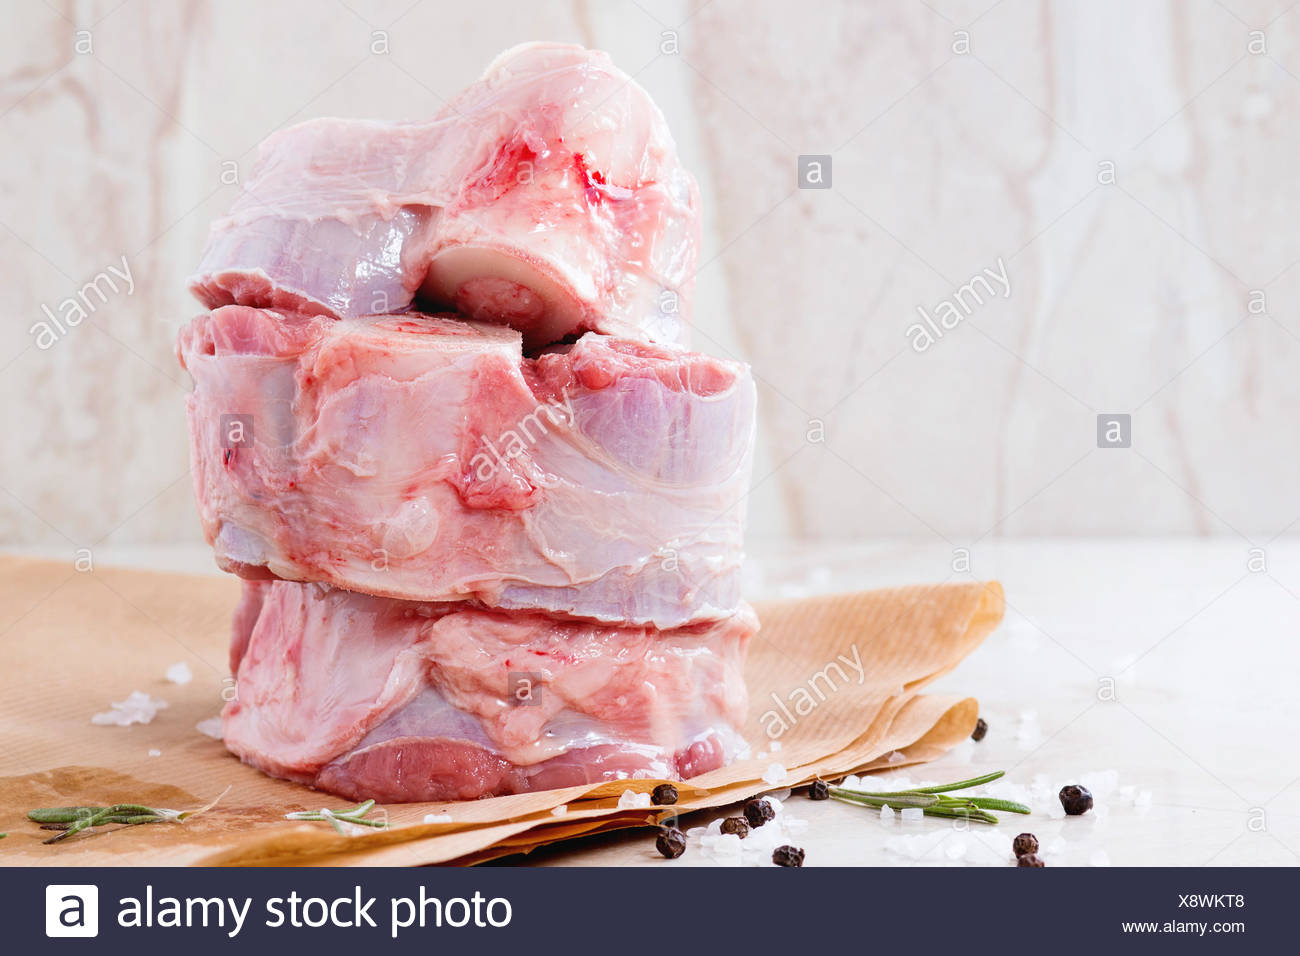 Stack of raw osso buco meat on crumpled paper with salt, pepper and rosemary over white marble as background Stock Photo